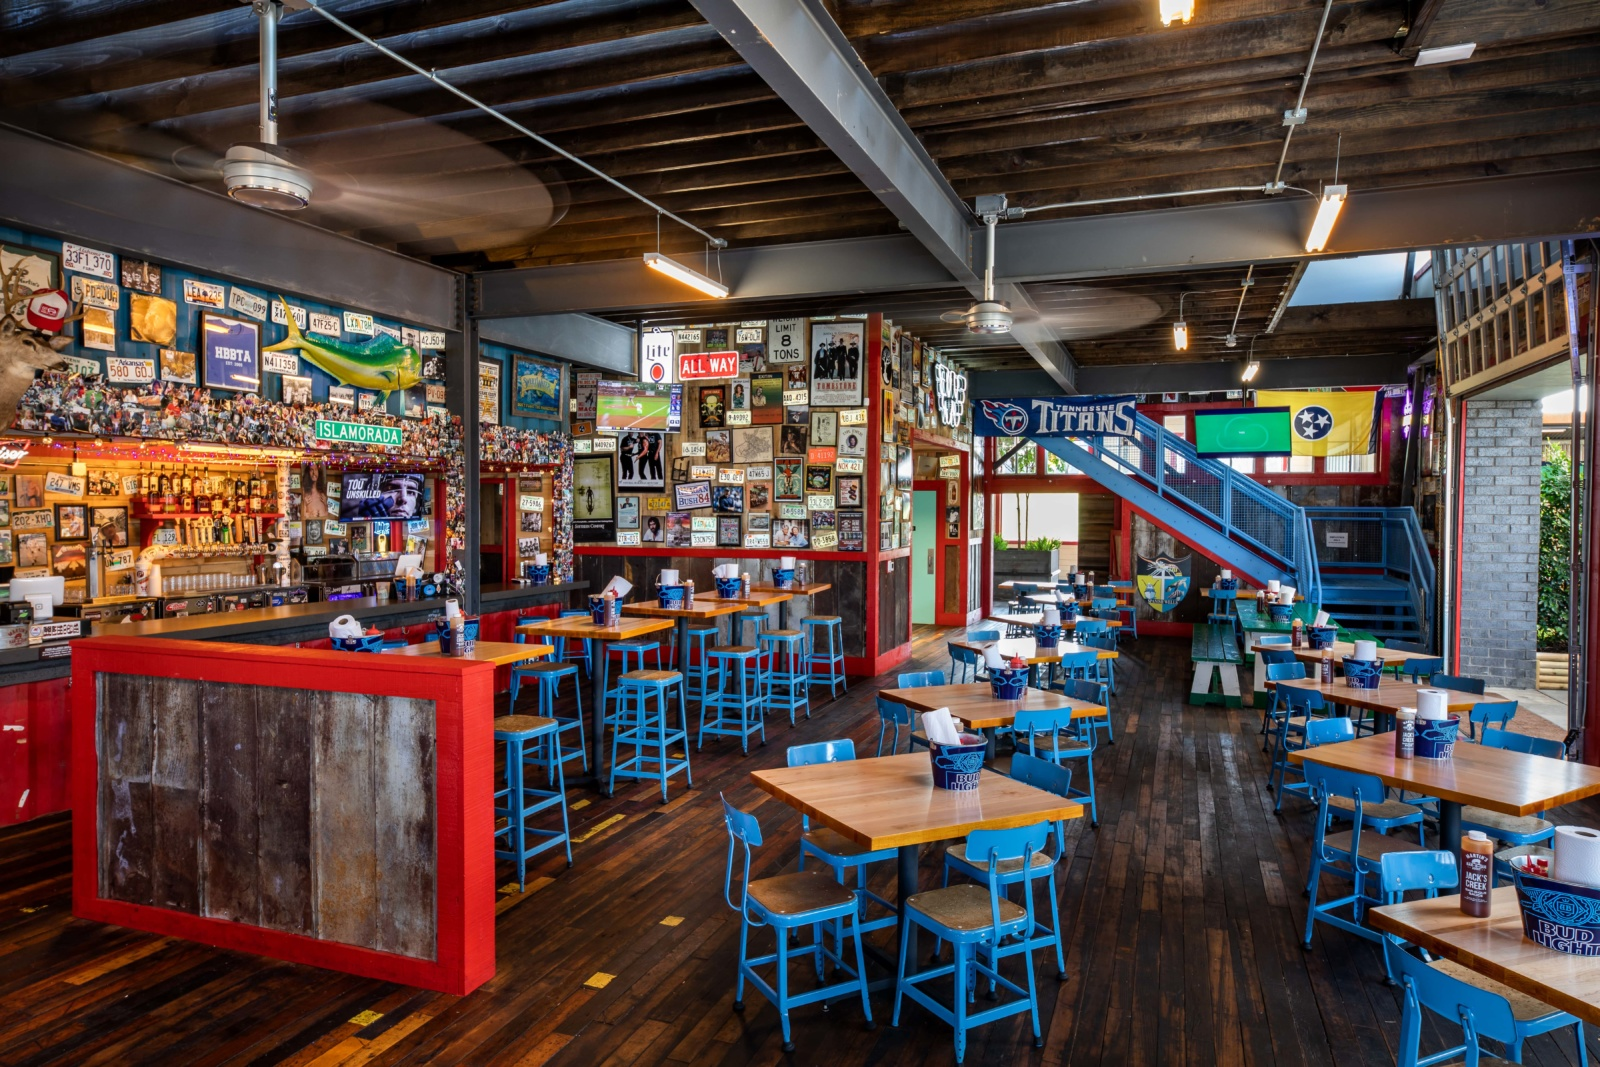 The dining room of Martin's BBQ with the blue and red branding colors throughout.